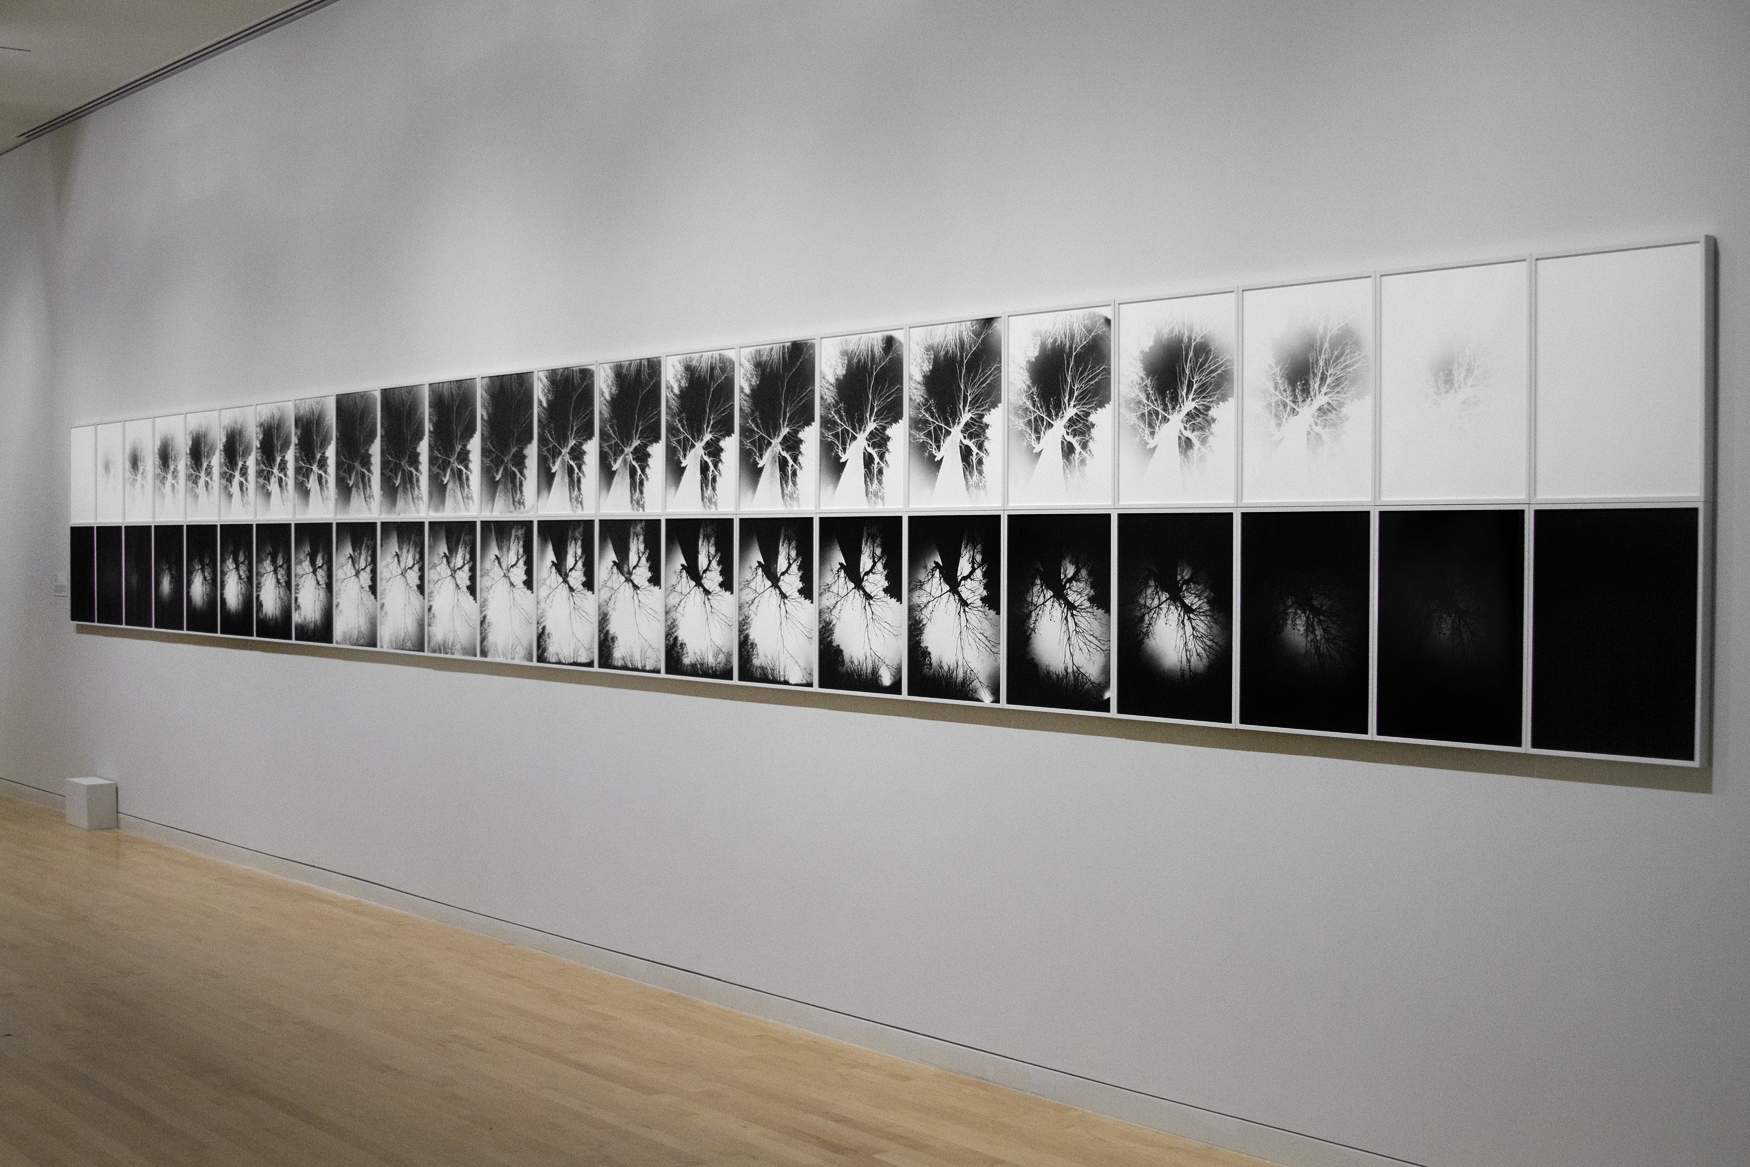 Solstice , 2015-16, 46 gelatin silver prints, installation view at the Georgia Museum of Art, 40.5 x 391 in.